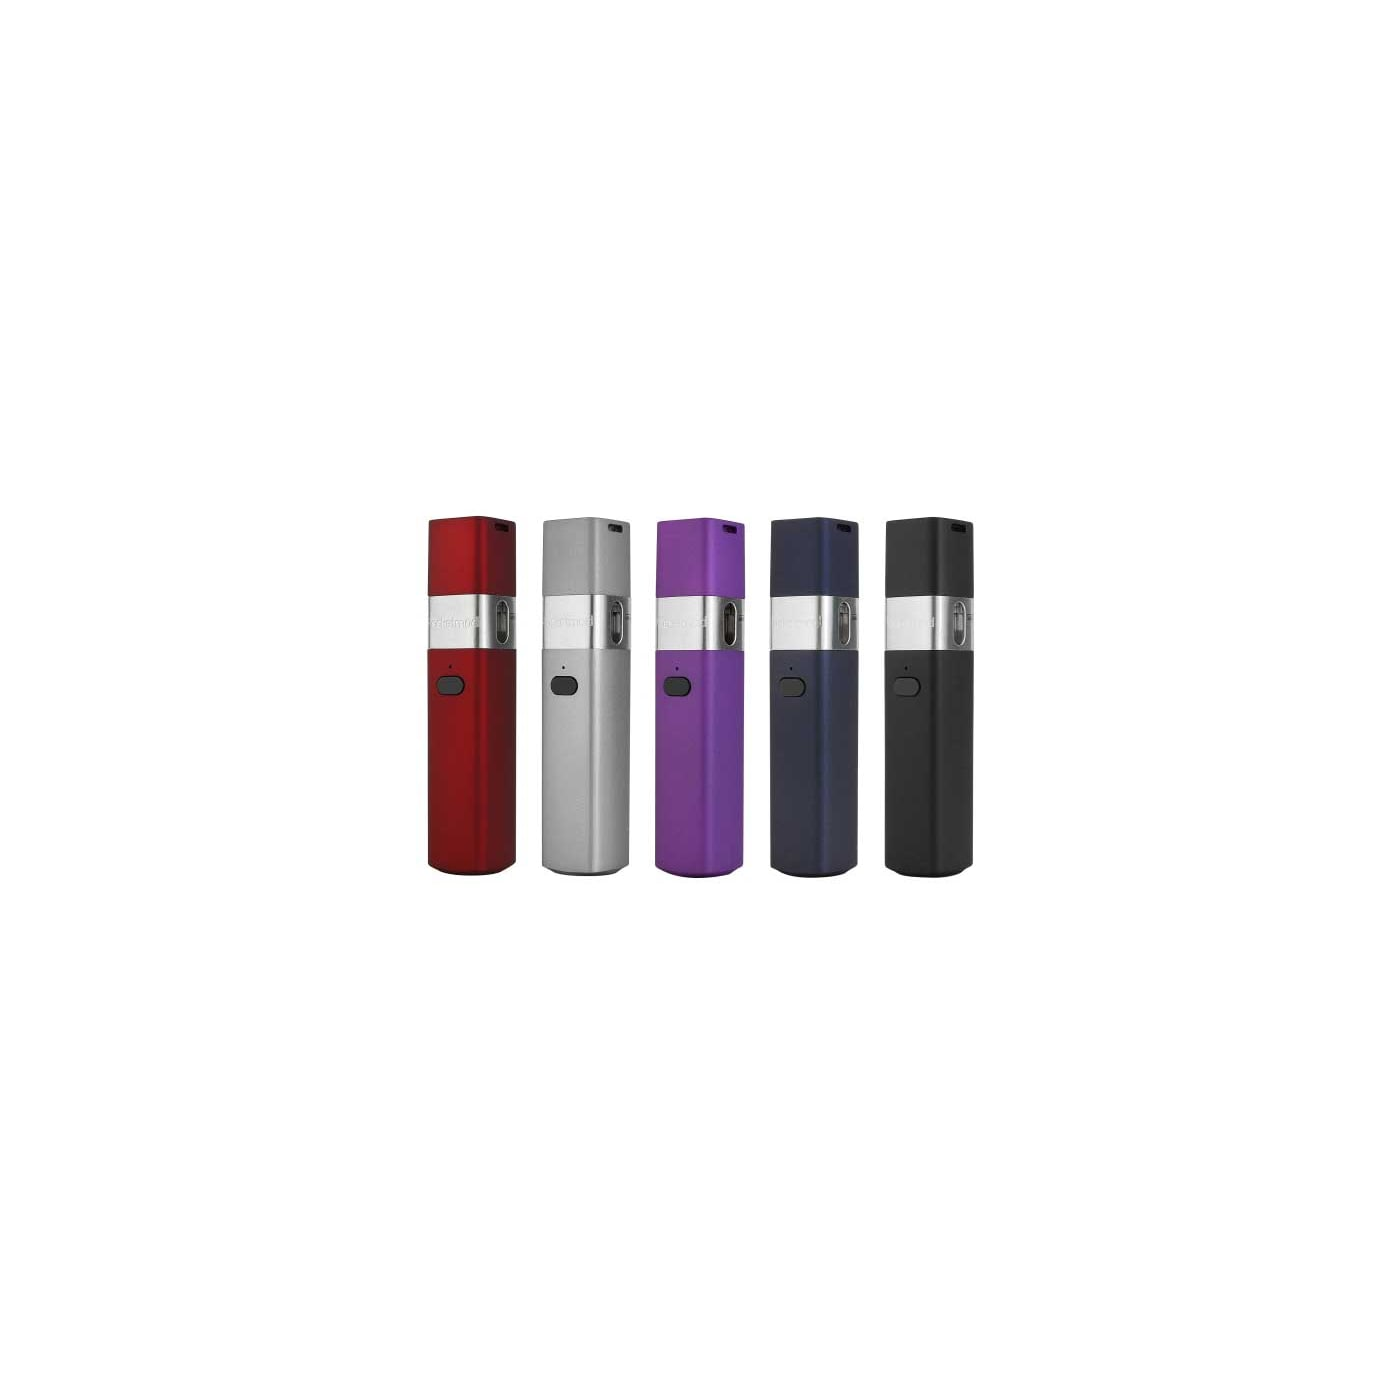 Pocketmod Starter Kit - Wholesale Innokin Kits